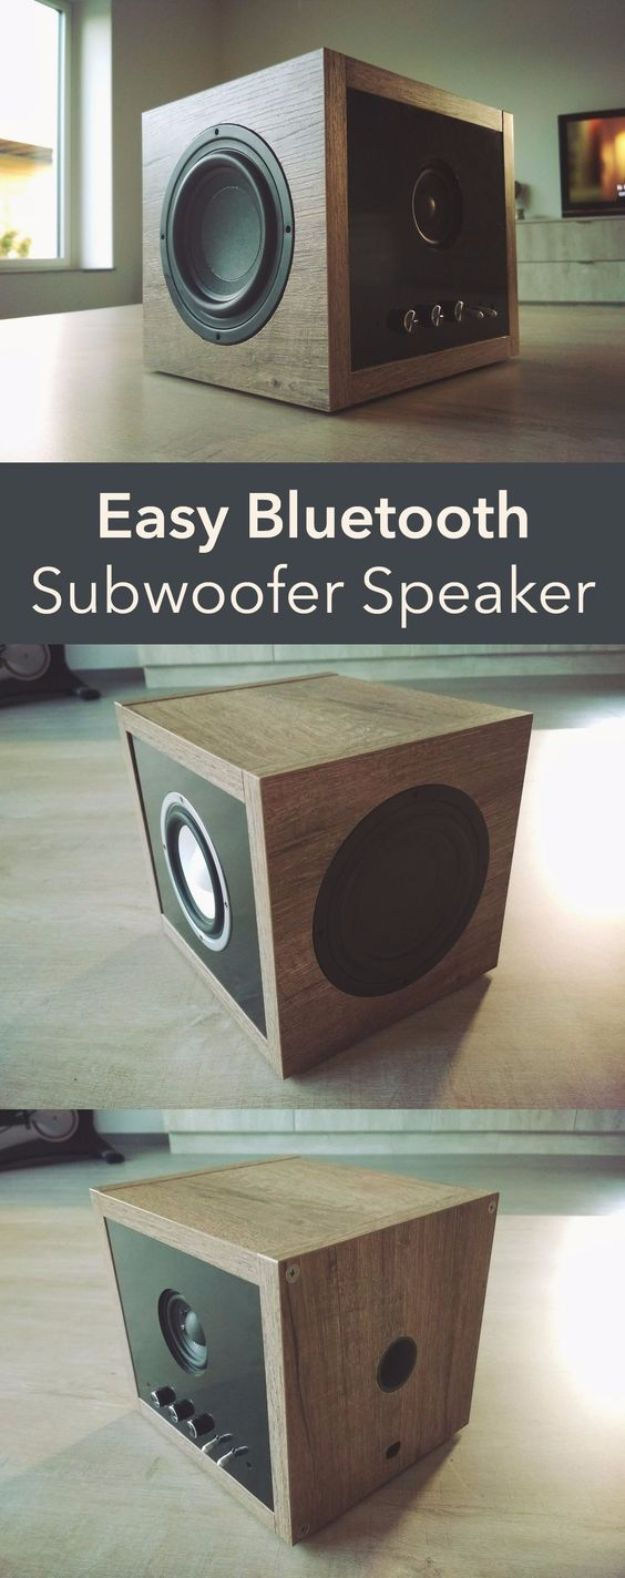 DIY Gadgets - Easy Bluetooth Subwoofer Speaker - Homemade Gadget Ideas and Projects for Men, Women, Teens and Kids - Steampunk Inventions, How To Build Easy Electronics, Cool Spy Gear and Do It Yourself Tech Toys #gadgets #diy #stem #diytoys